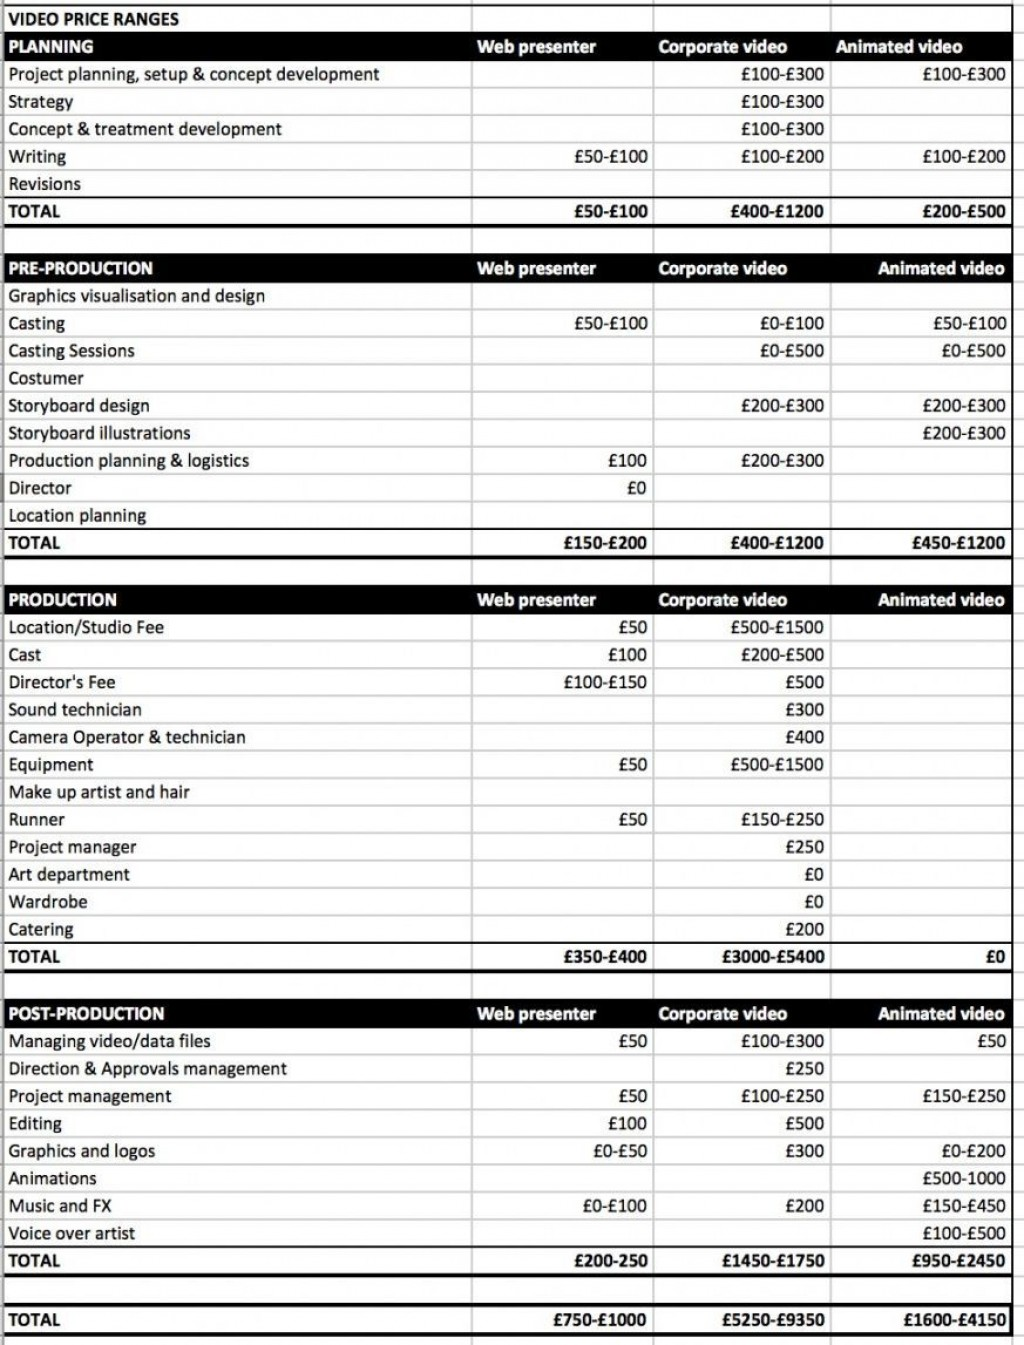 008 Formidable Video Production Budget Template Design  Example Excel SampleLarge